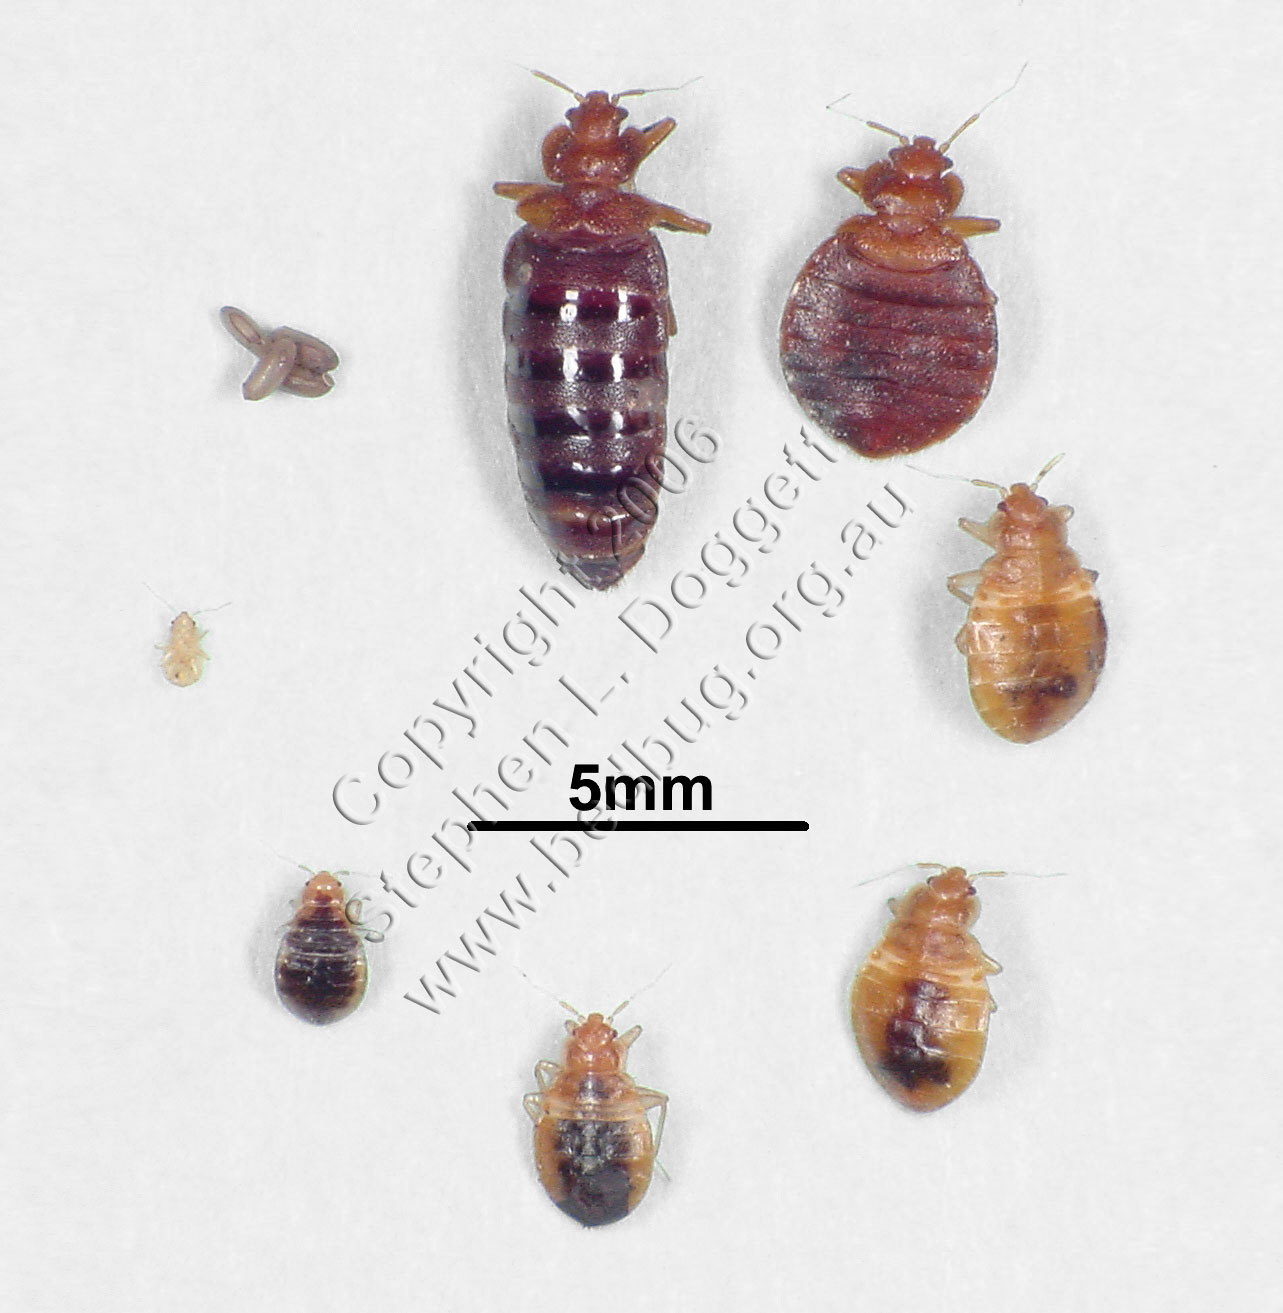 Images Of Bed Bugs Information About Bed Bugs Pictures Videos Treatment Options